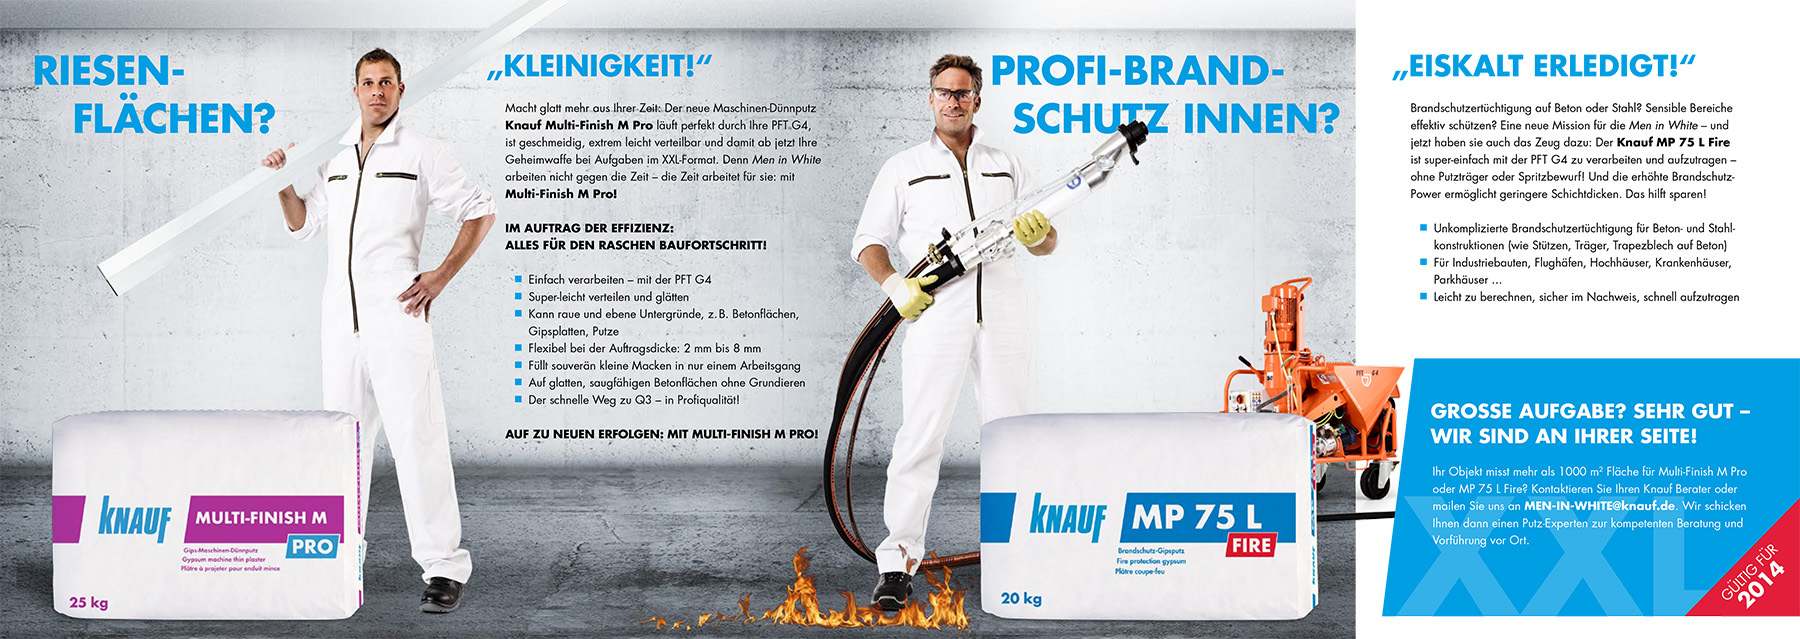 KNAUF_mailing-MiW_1-140805-screen-2.jpg